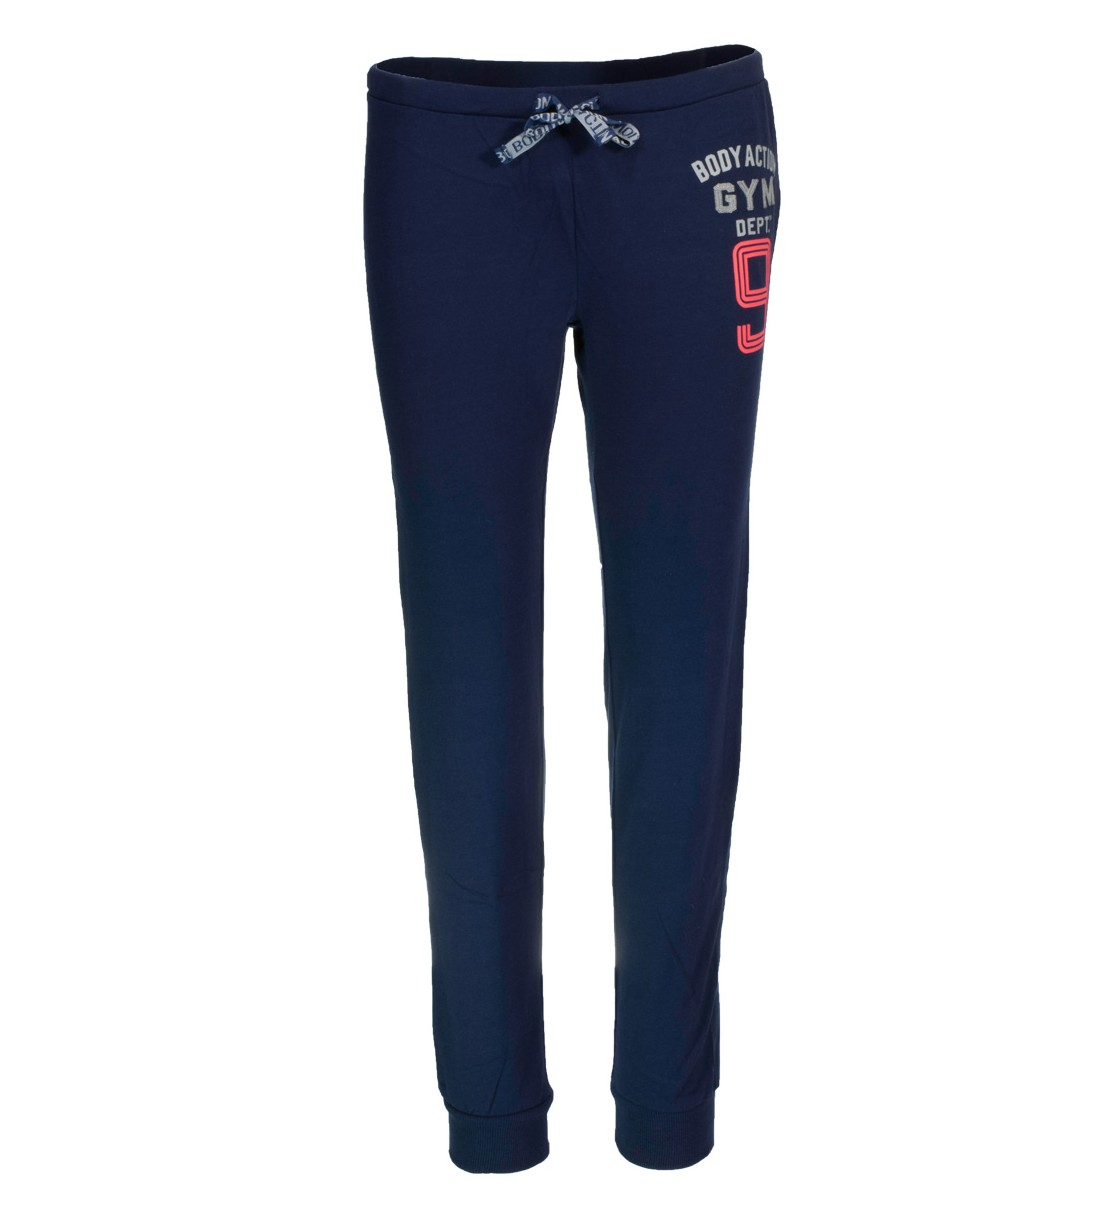 Body Action Γυναικείο Αθλητικό Παντελόνι Women Relaxed Fit Pants 021607